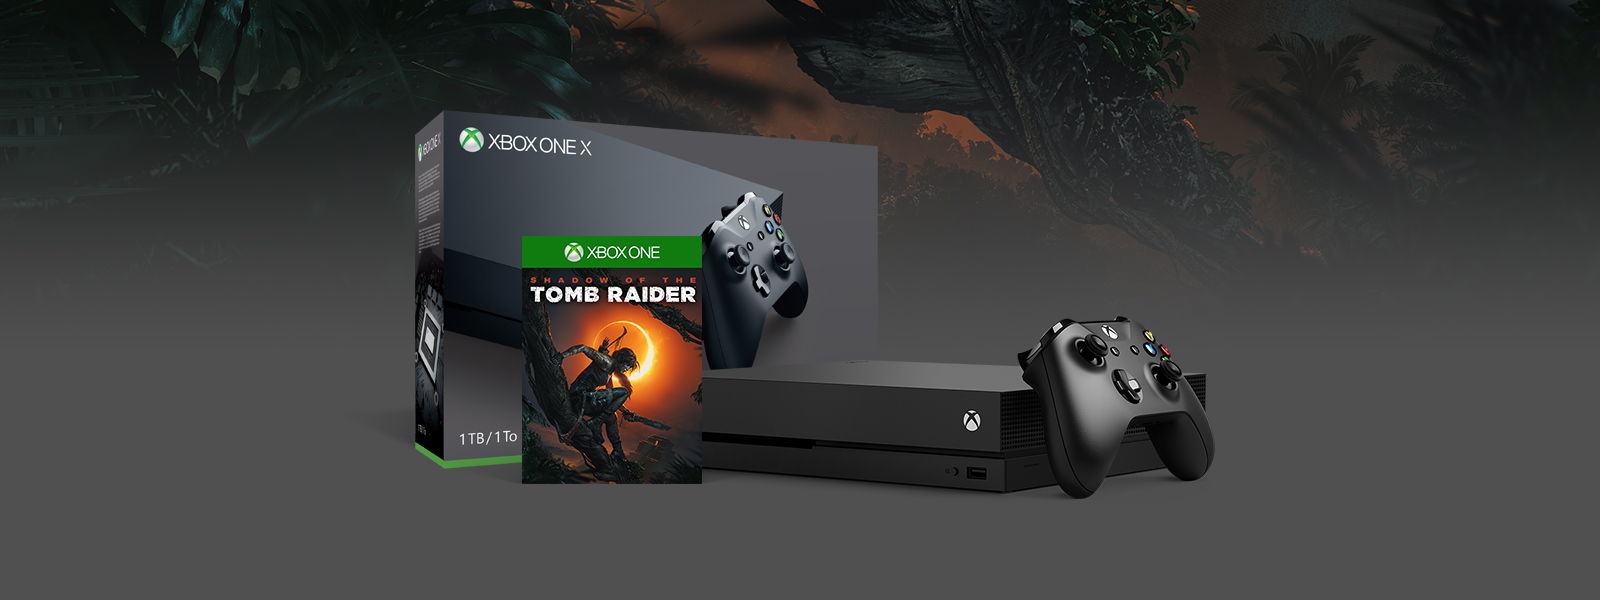 Box and console shot of Xbox One X Shadow of the Tomb Raider Bundle (1TB), background of in-game forest